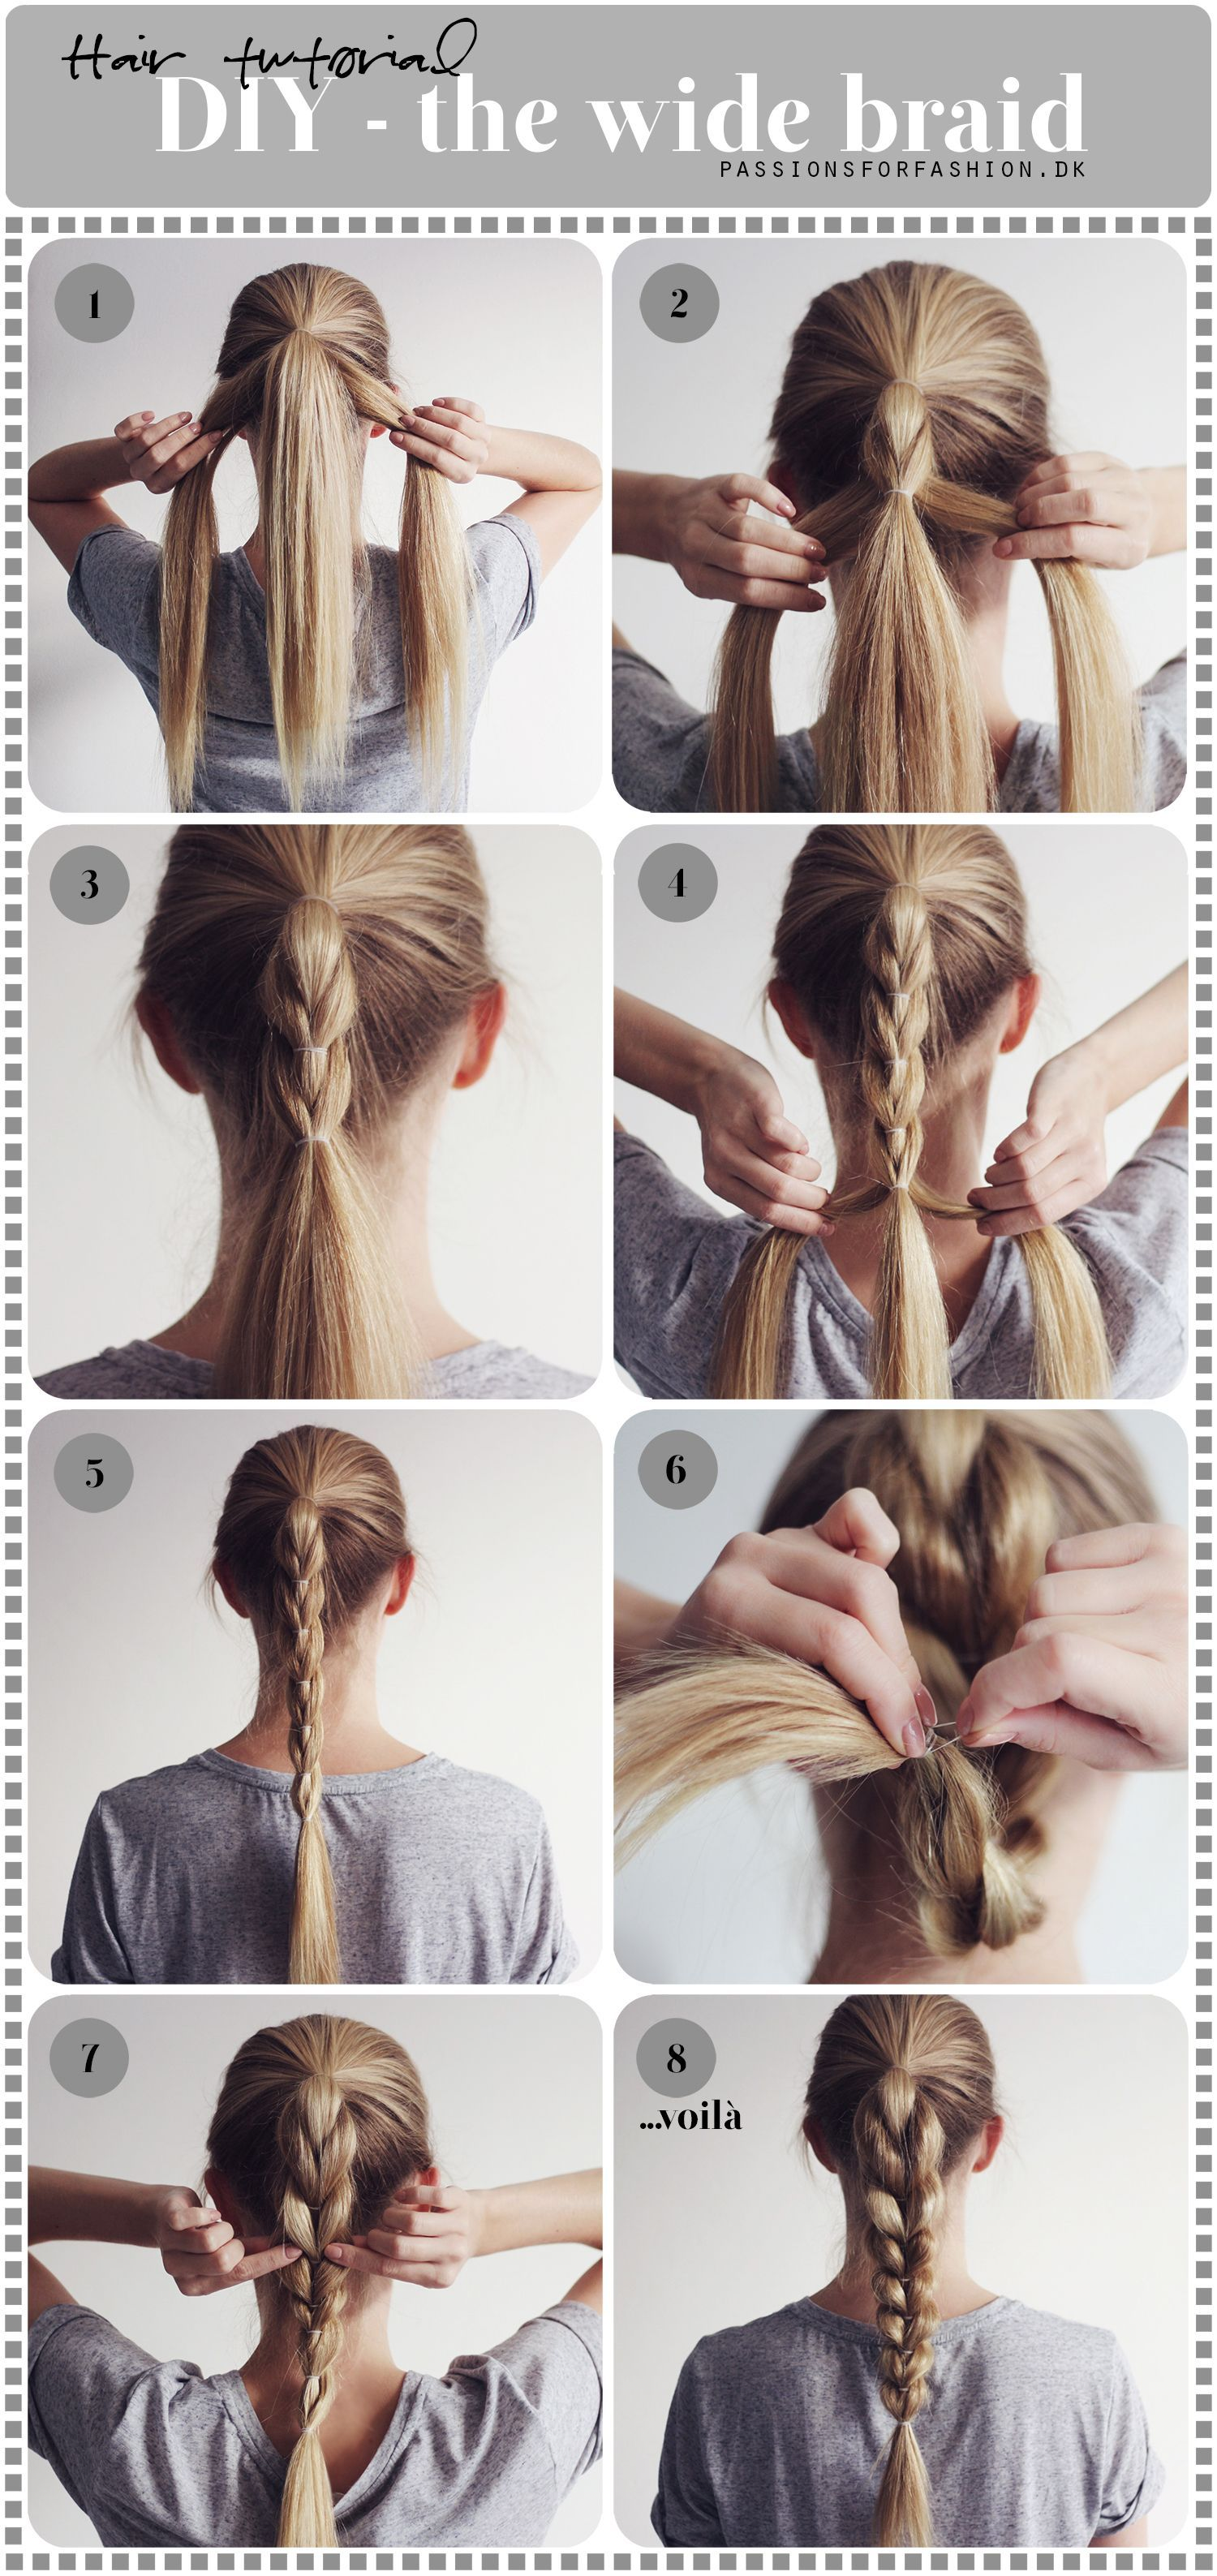 Diy The Wide Braid Christina Dueholm Coiffure Facile Coiffure Tuto Coiffure